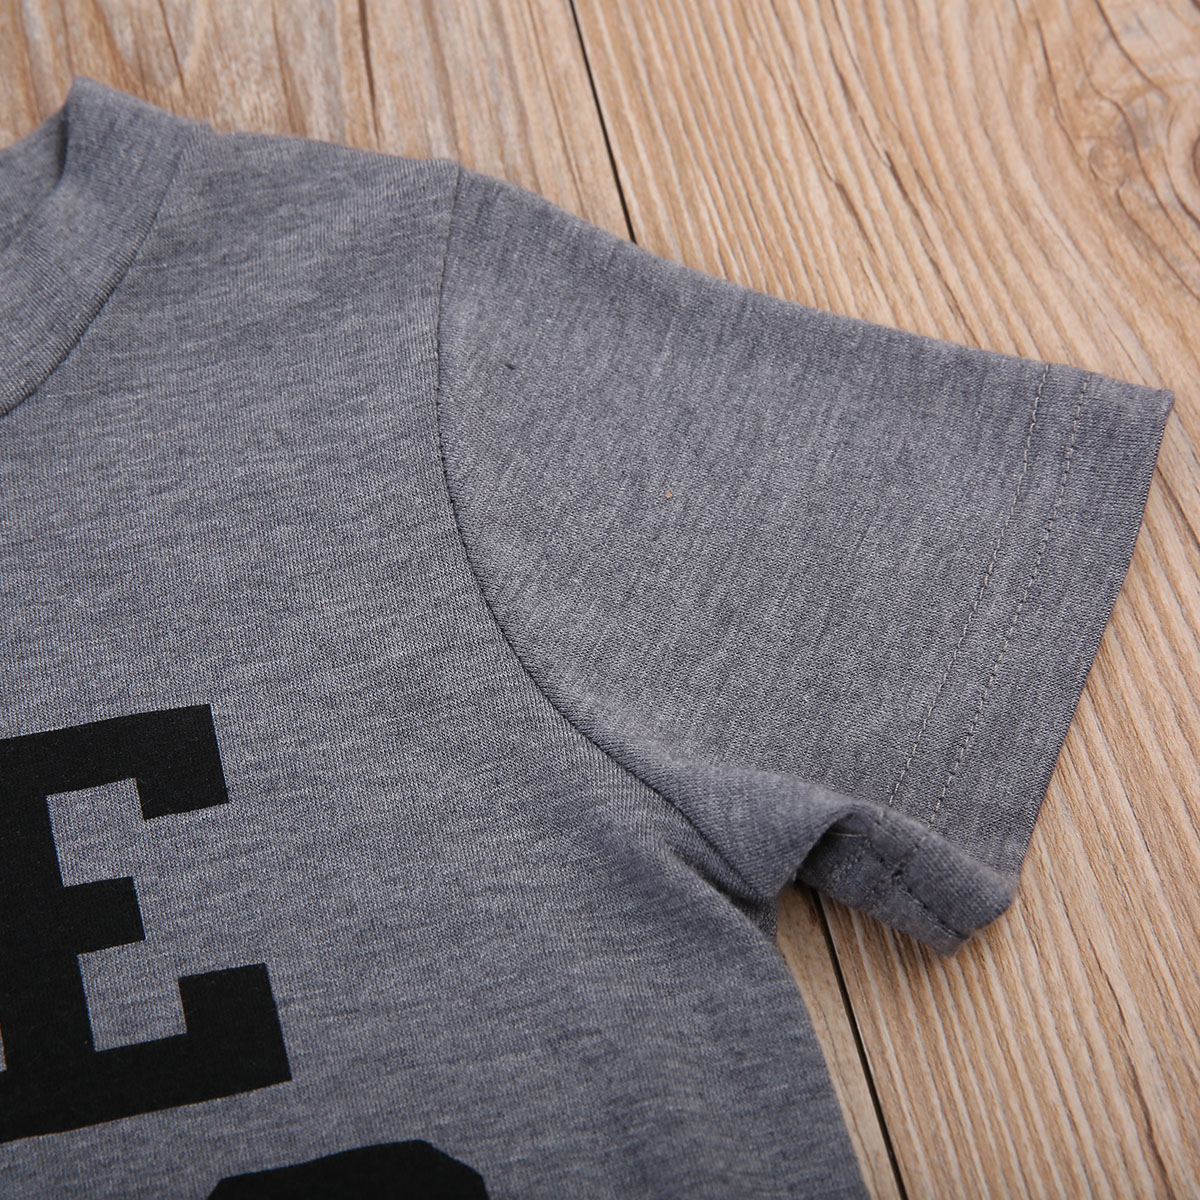 788c2a67 Unisex the bubs Kids T Shirts Infant Baby Toddler Boy Girl Summer Short  Sleeve Cotton Top T Shirt-in T-Shirts from Mother & Kids on Aliexpress.com  | Alibaba ...